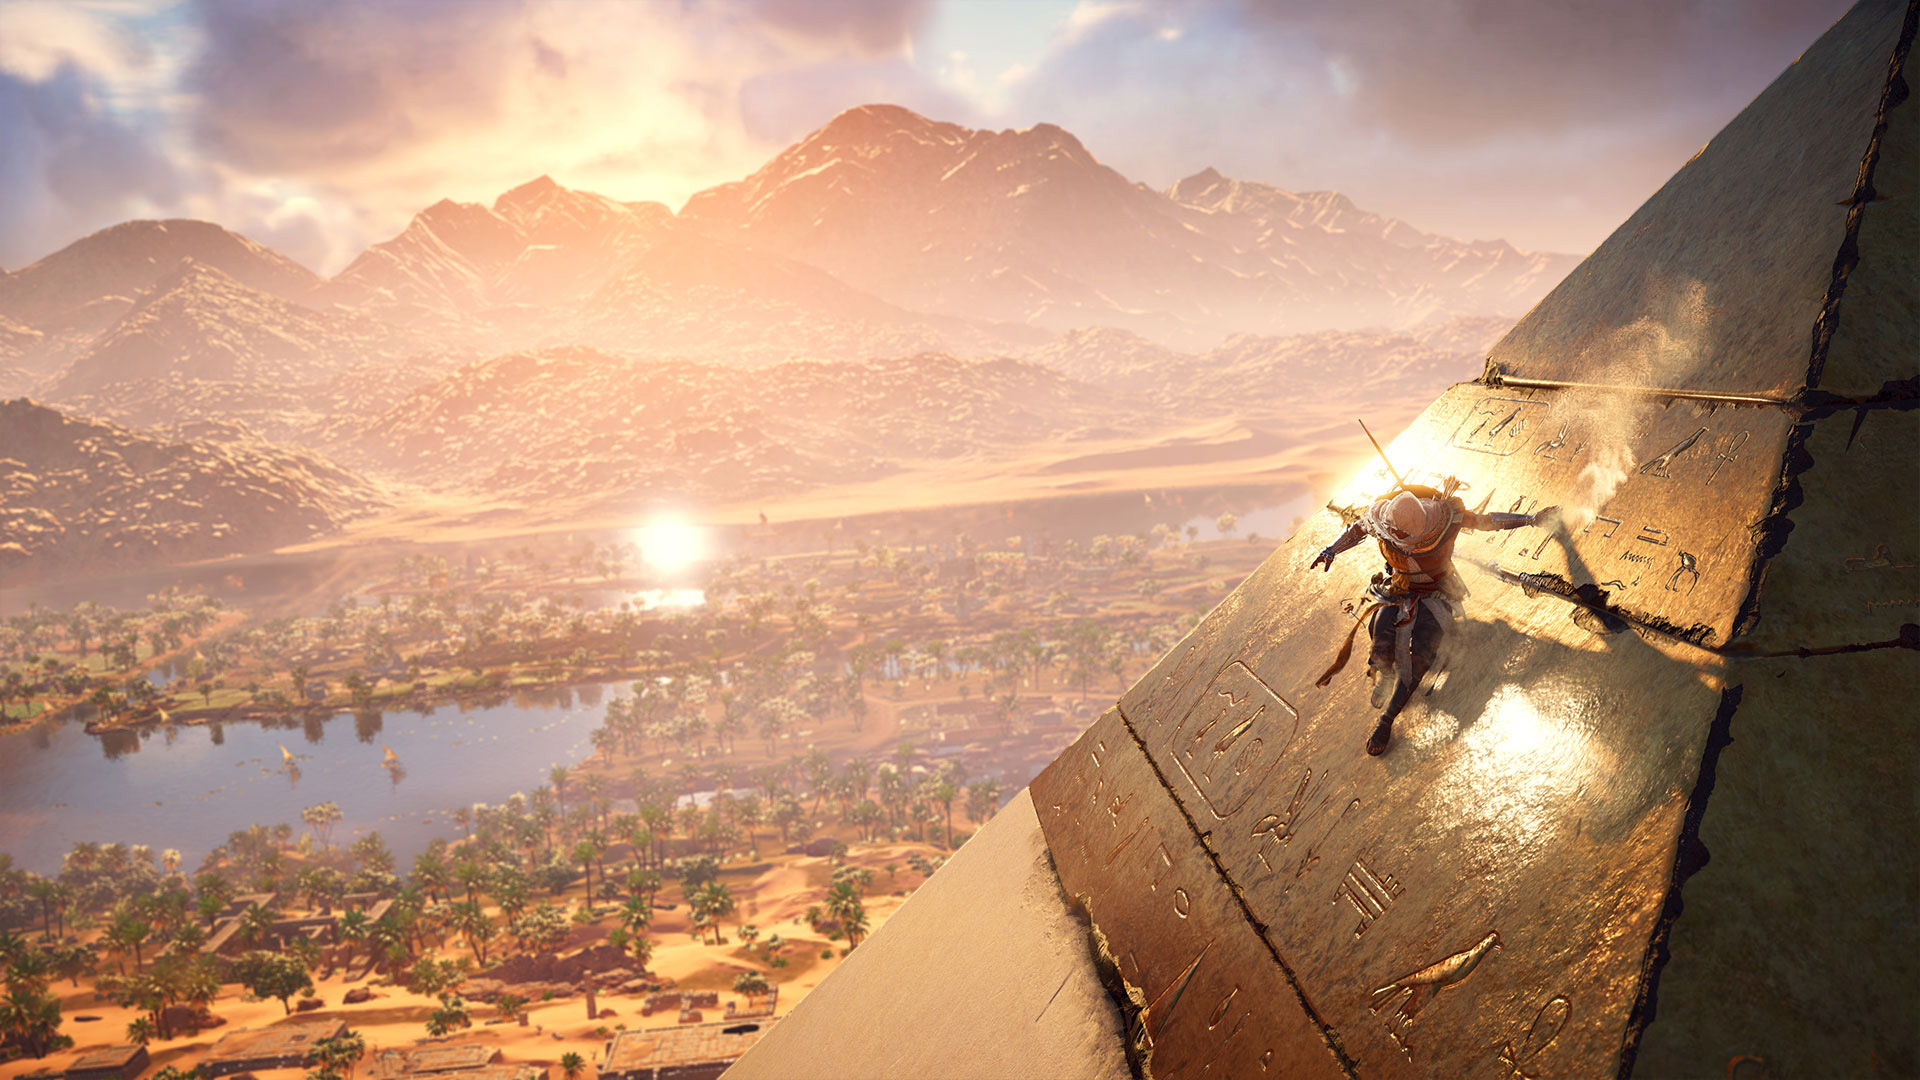 Select The Image Above To View The Wallpaper Full Screen - Assassins Creed Origins Wallpaper 1080p , HD Wallpaper & Backgrounds